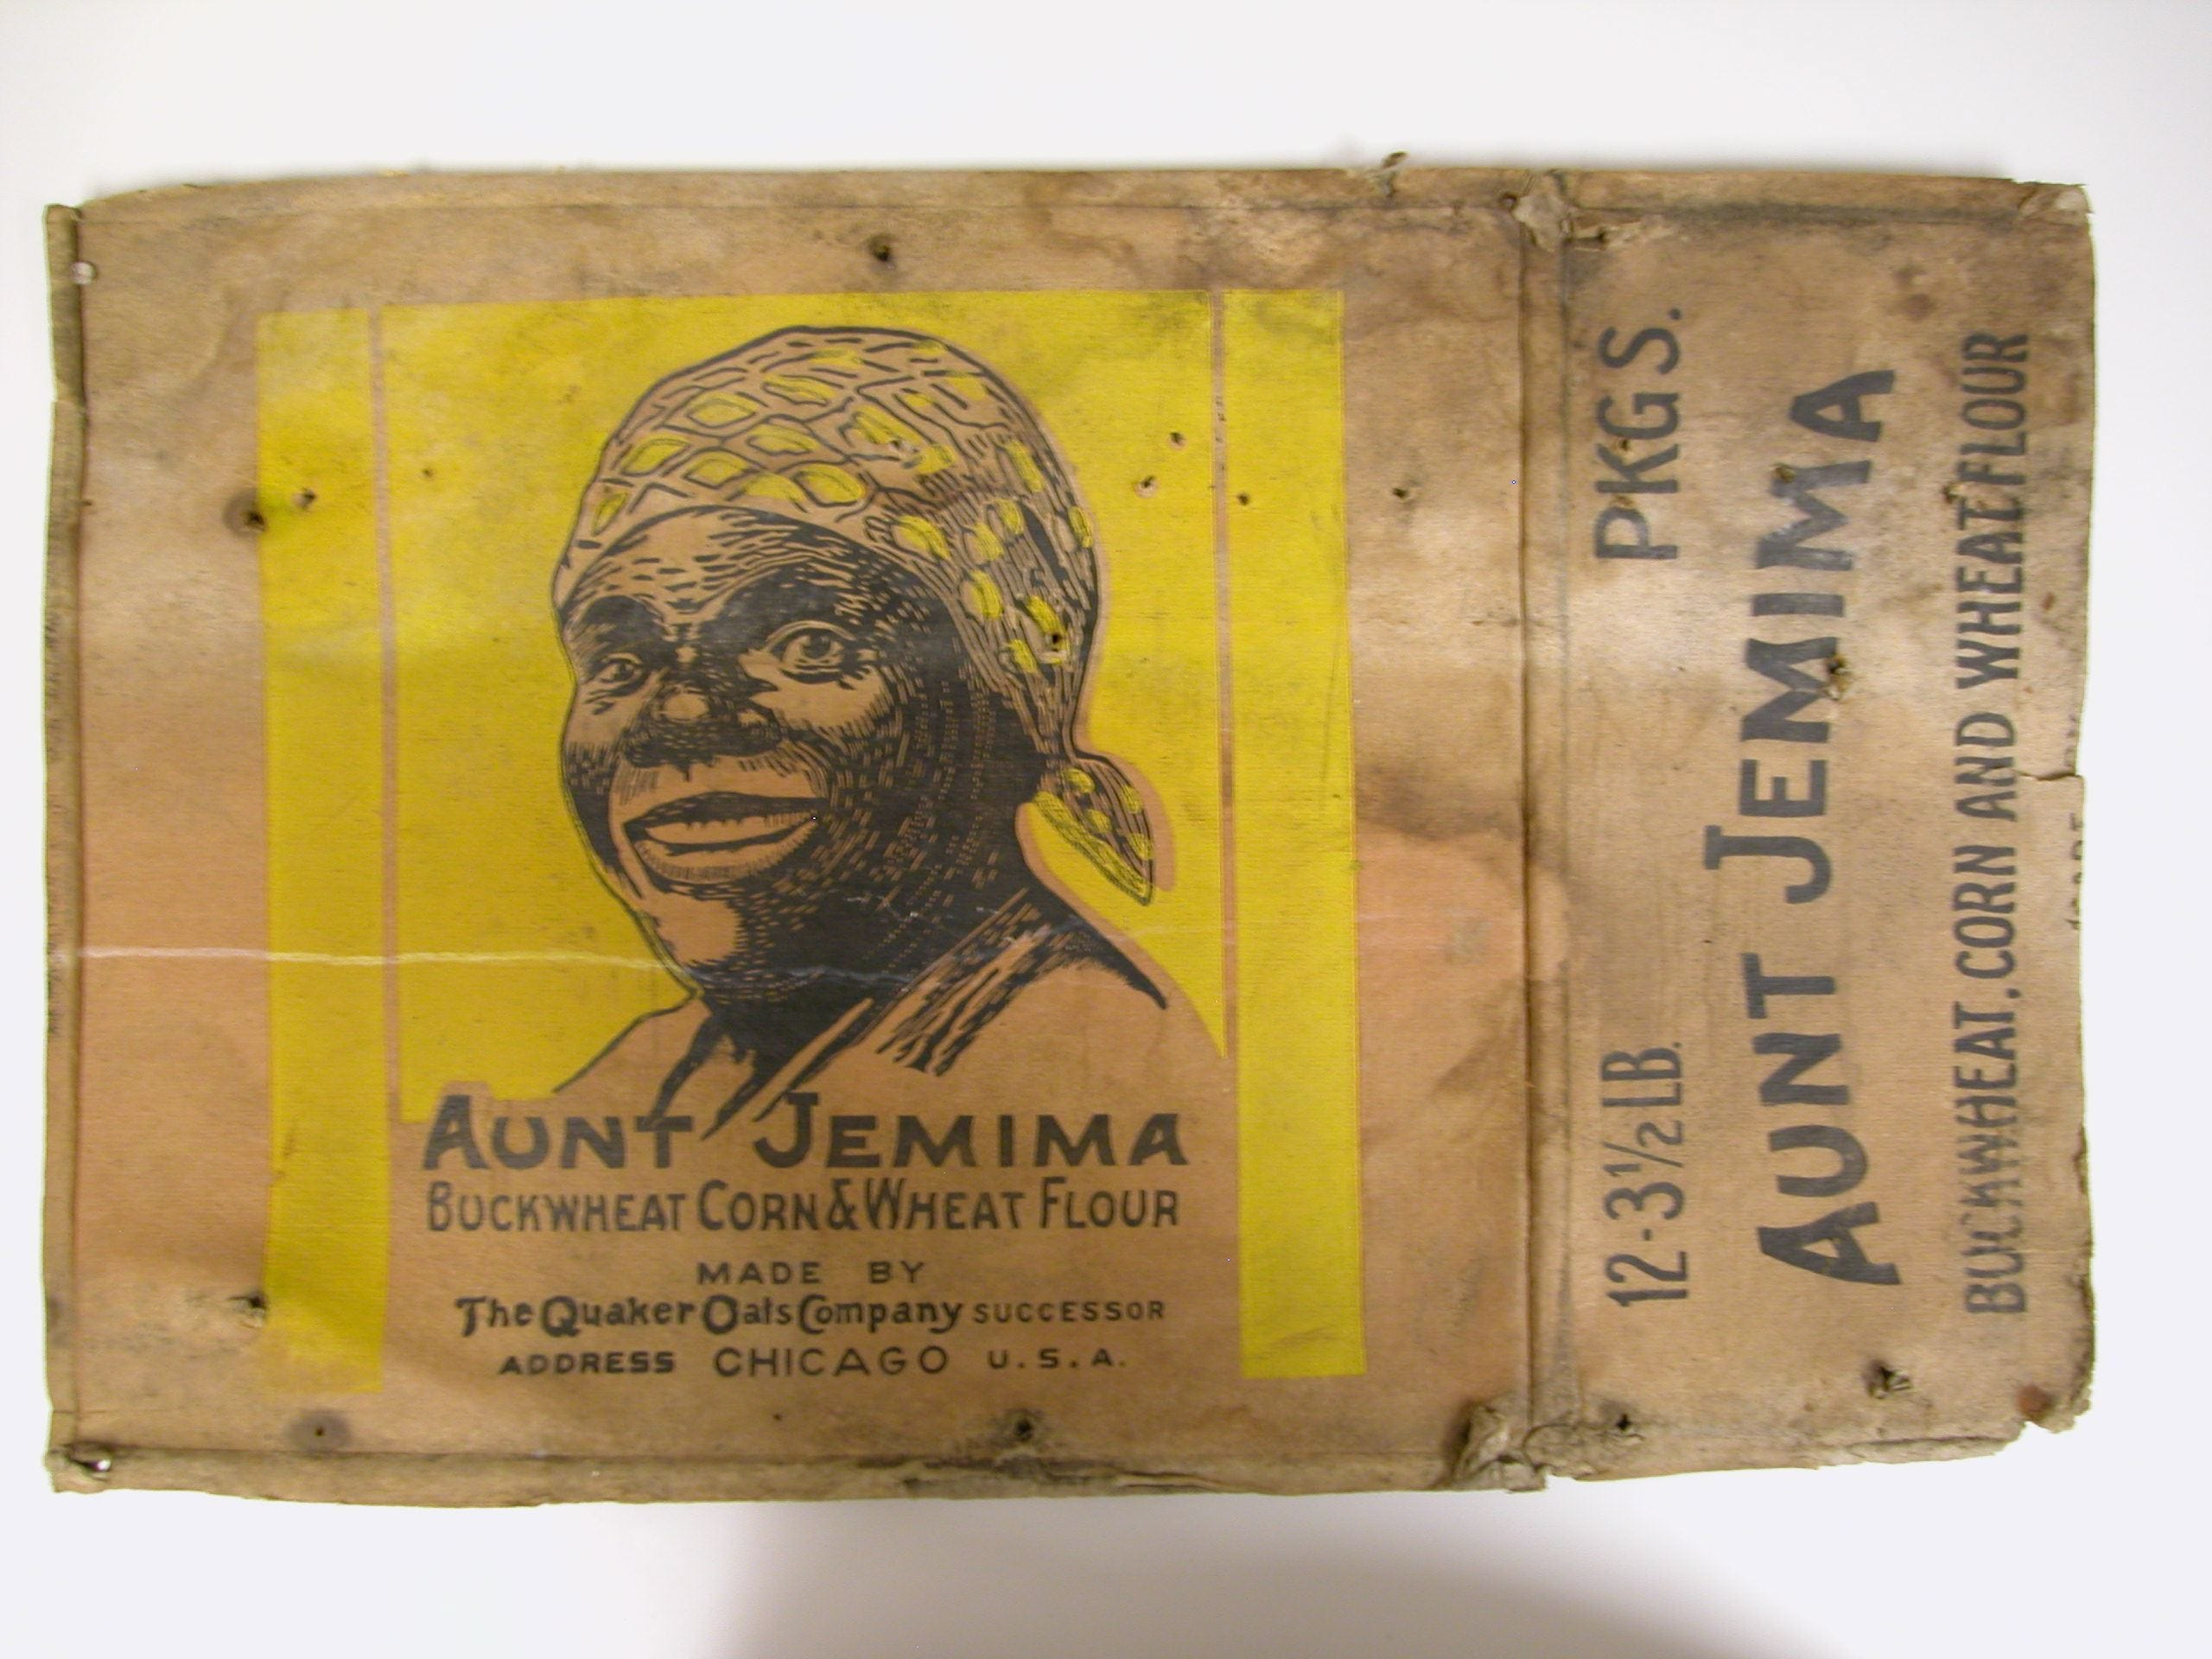 The last 'face' of Aunt Jemima brand